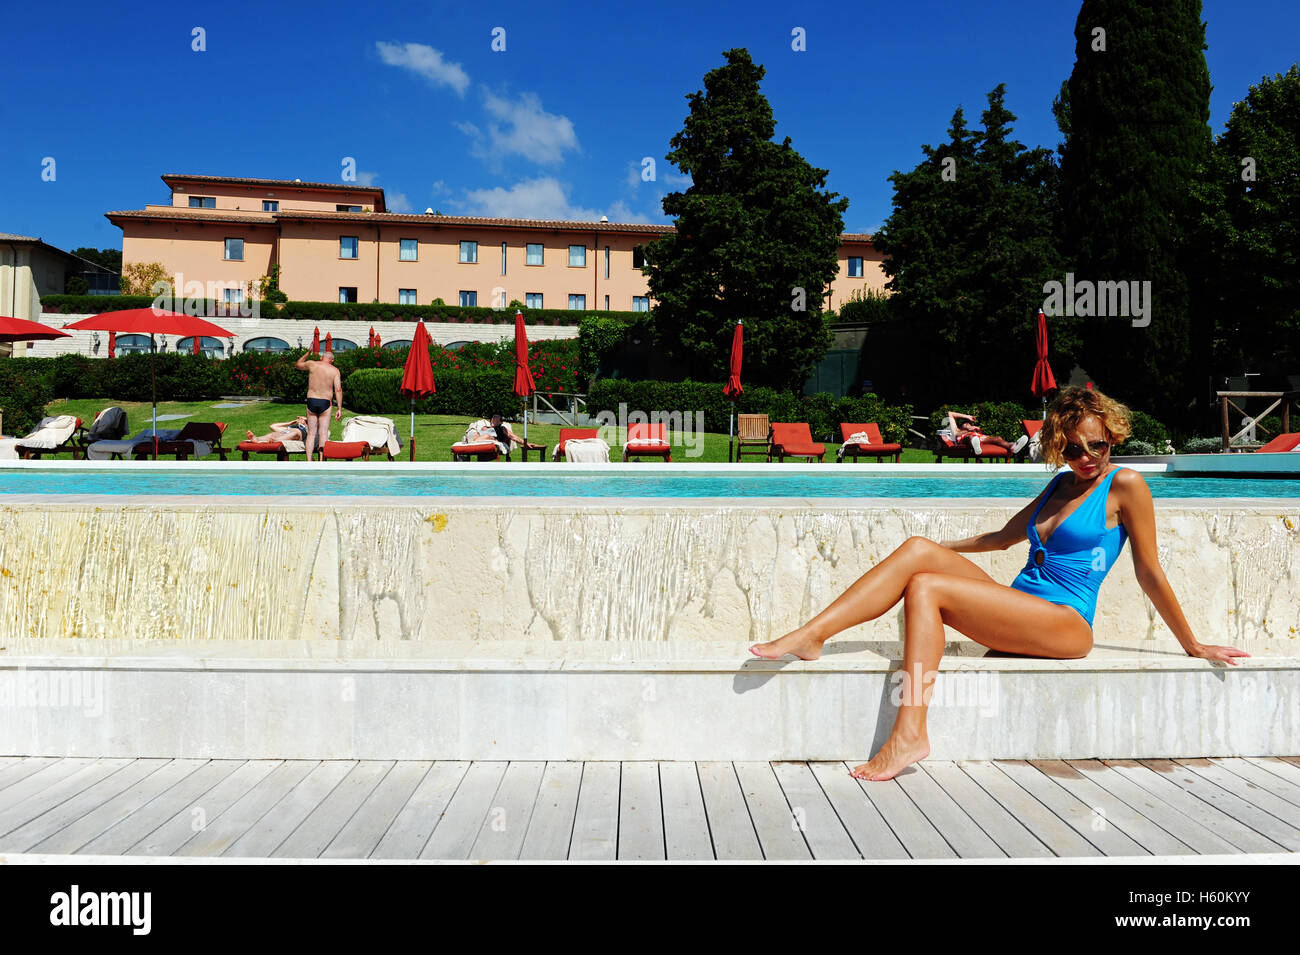 https://c8.alamy.com/comp/H60KYY/a-young-woman-relaxing-at-the-fonteverde-natural-spa-resort-in-san-H60KYY.jpg